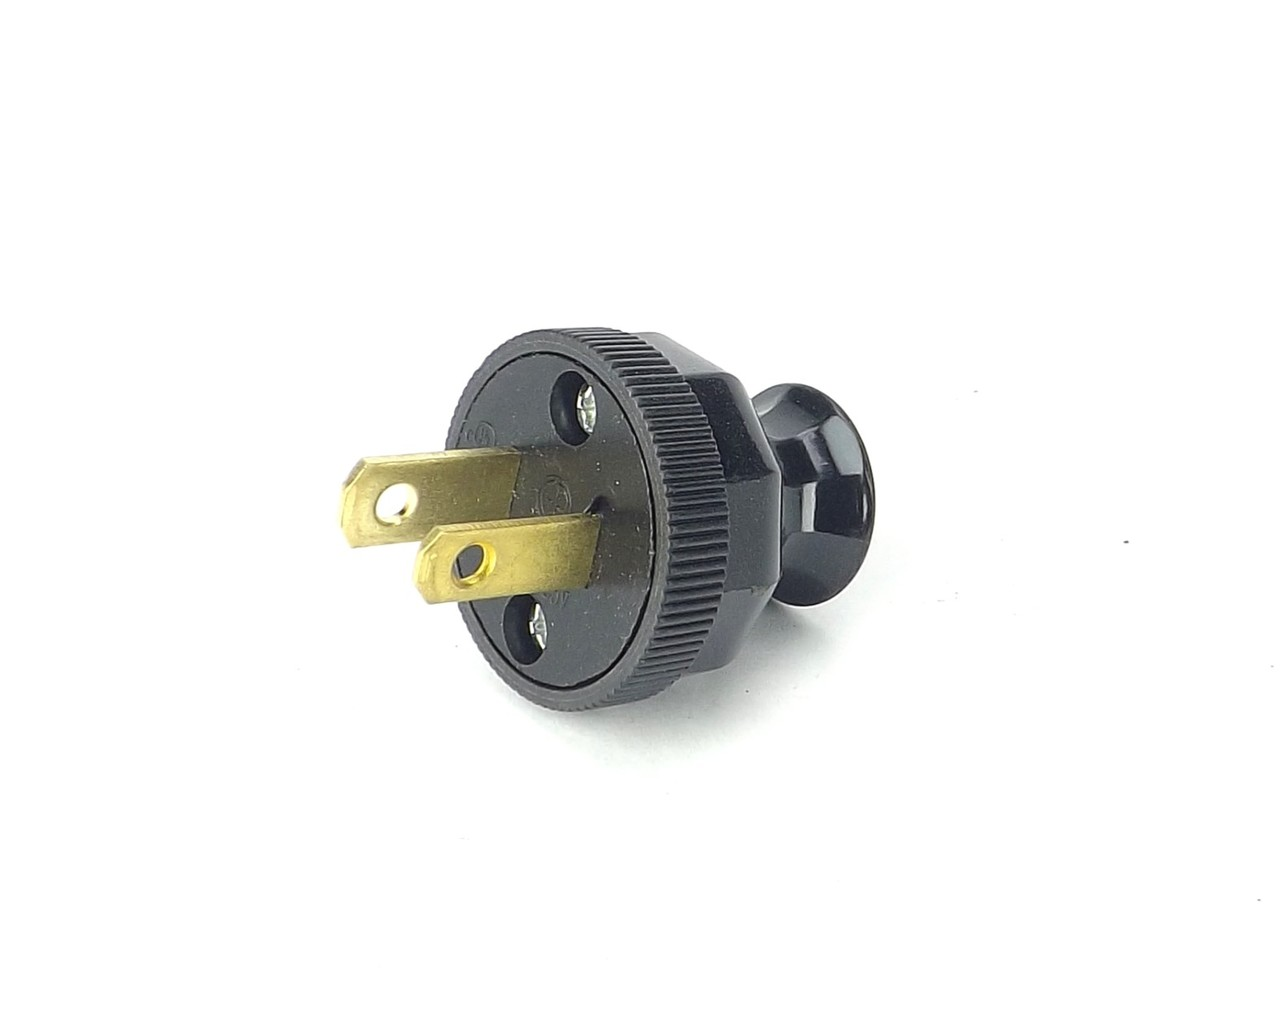 """Handy Grip"" Black Bakelite Style Attachment Plug"